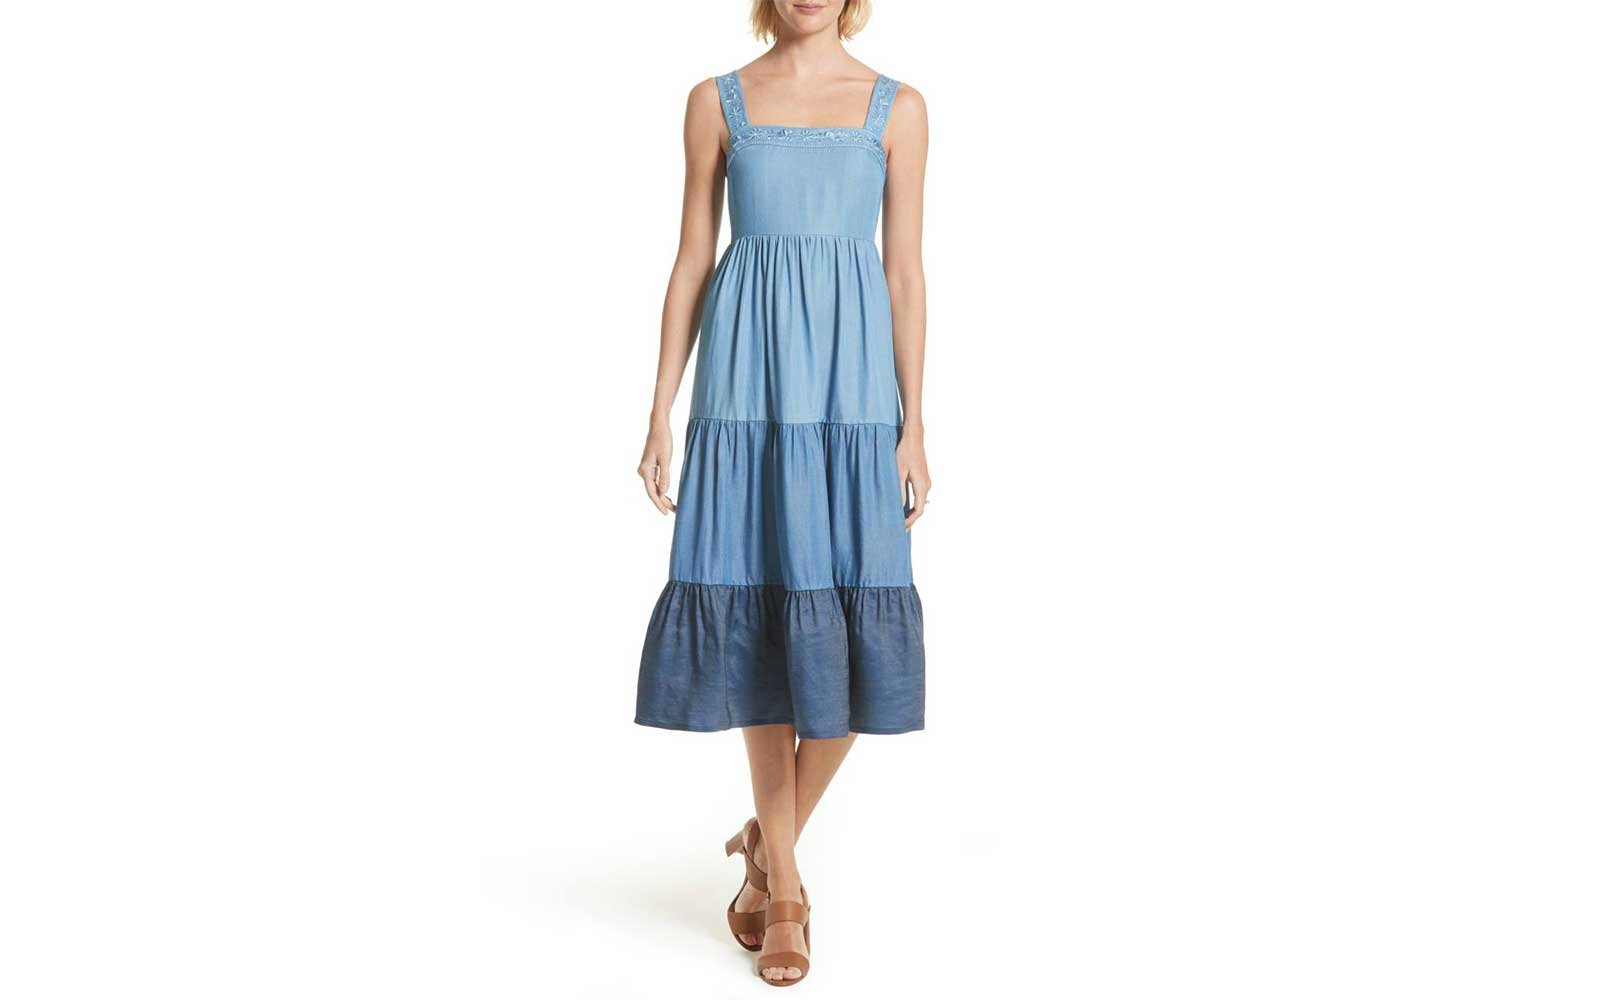 Kate Spade Tiered Denim Dress